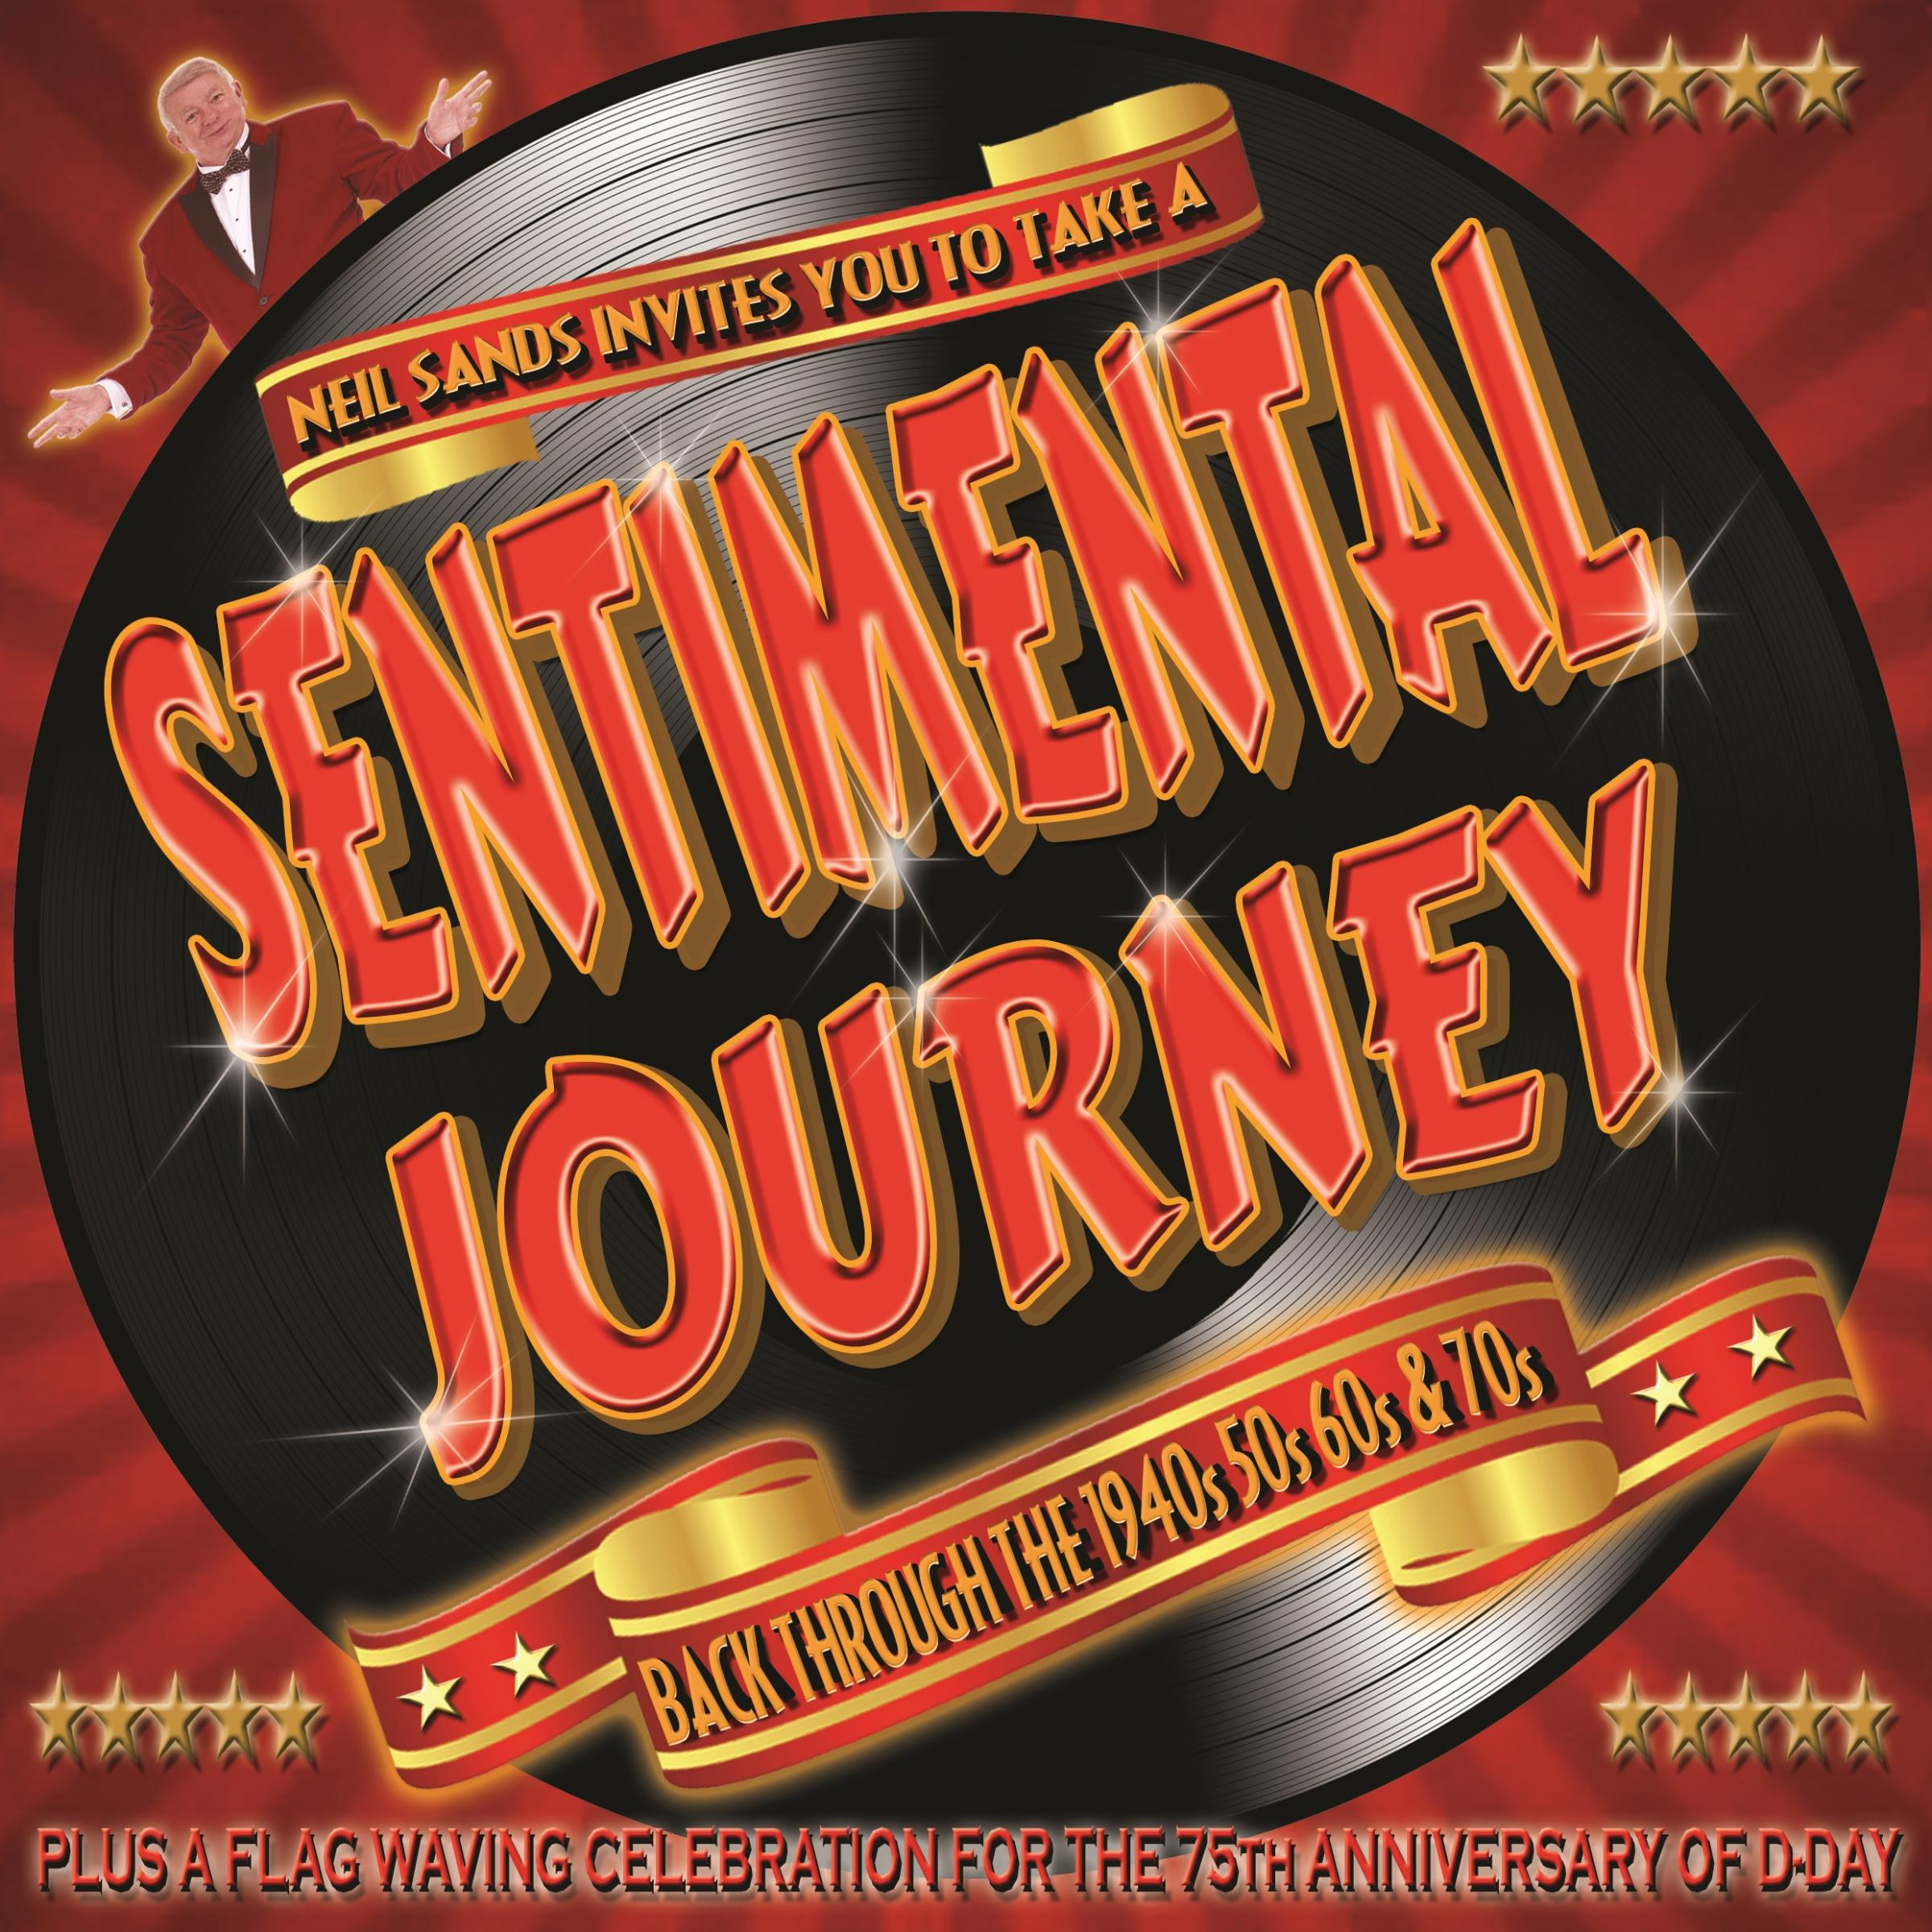 Sentimental Journey - matinee